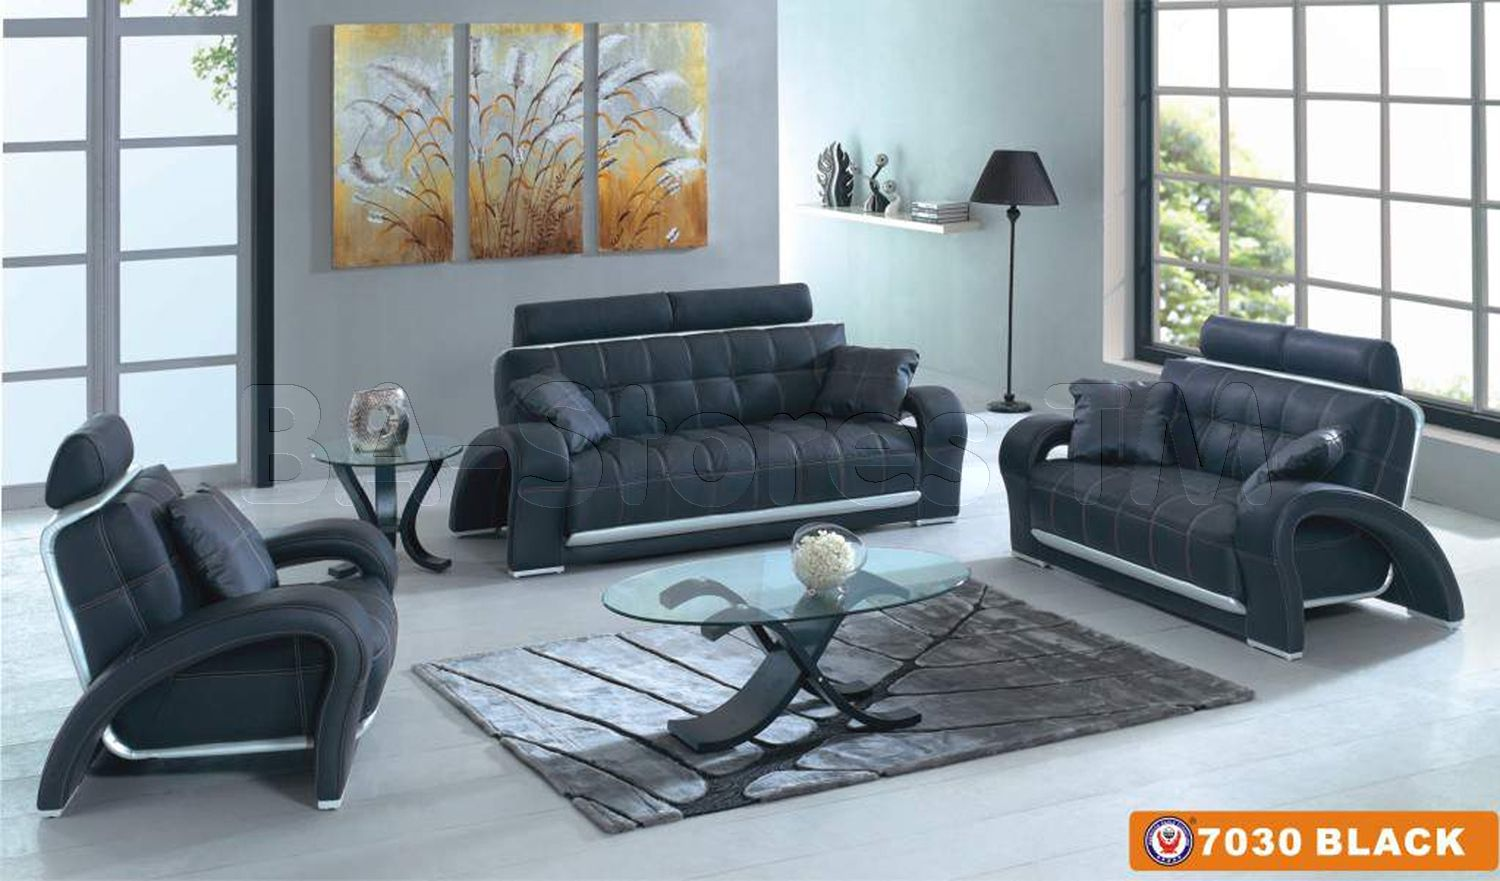 Black leather 3 pcs living room set sofa loveseat and armchair